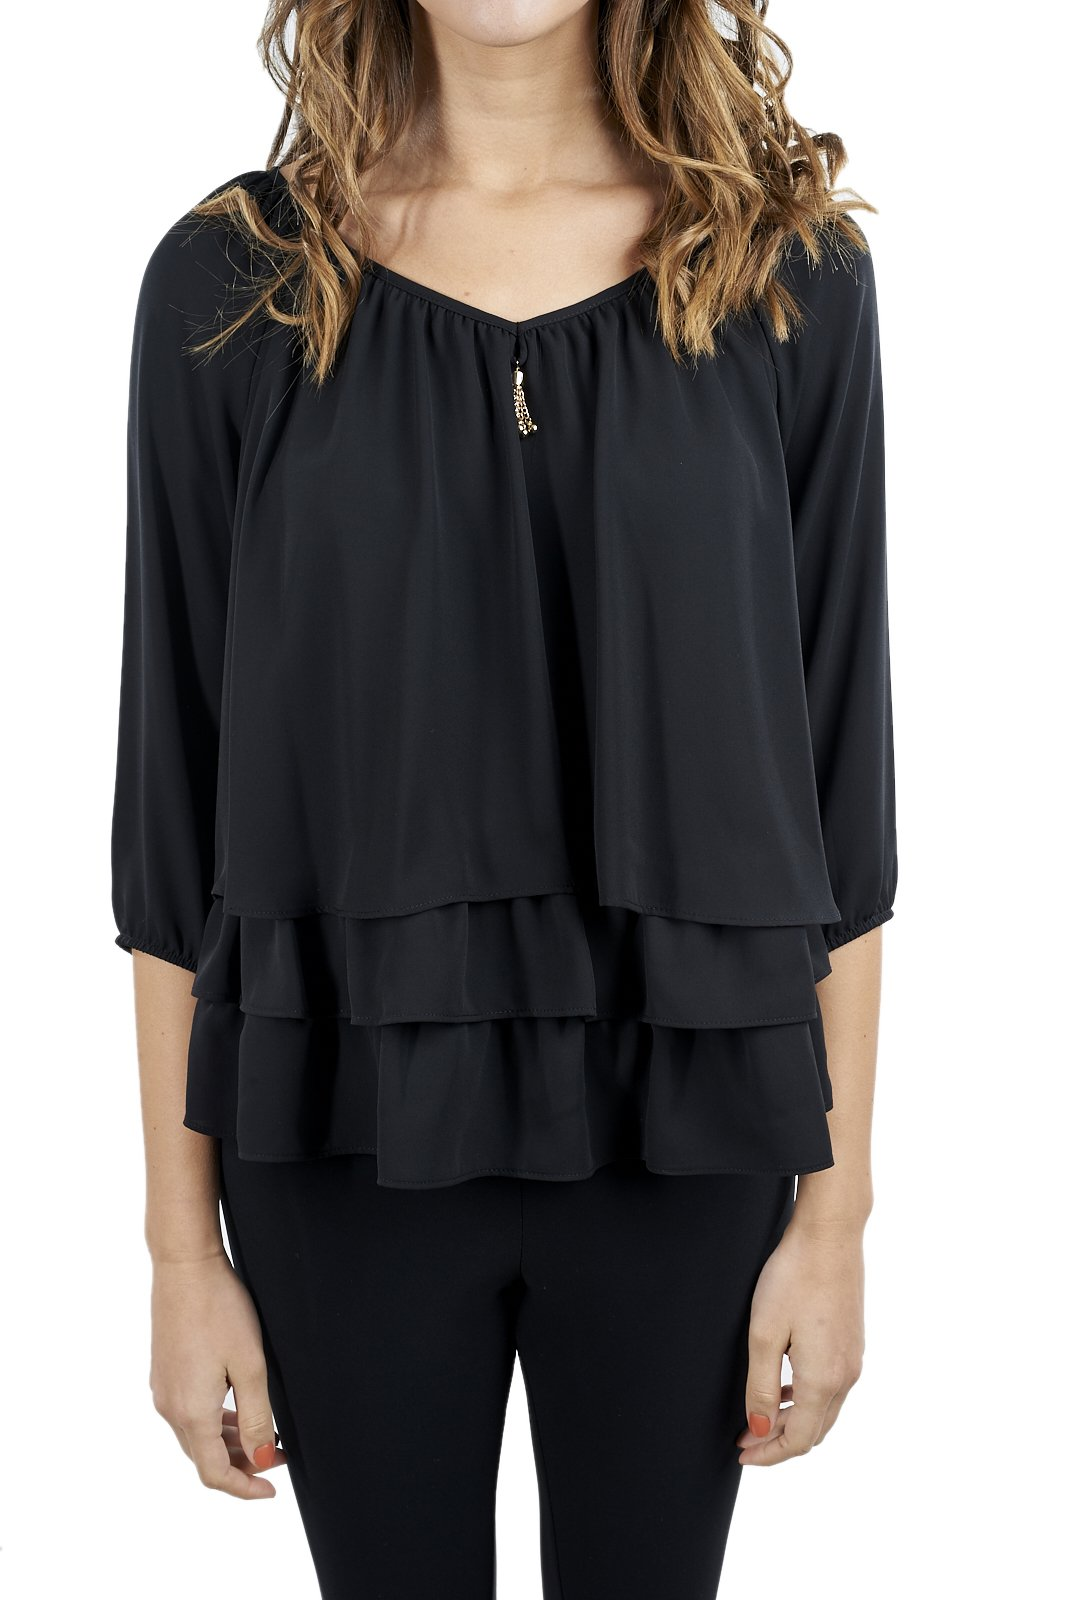 Joseph Ribkoff Black Layered Blouse with Golden Accent Style 171292-12